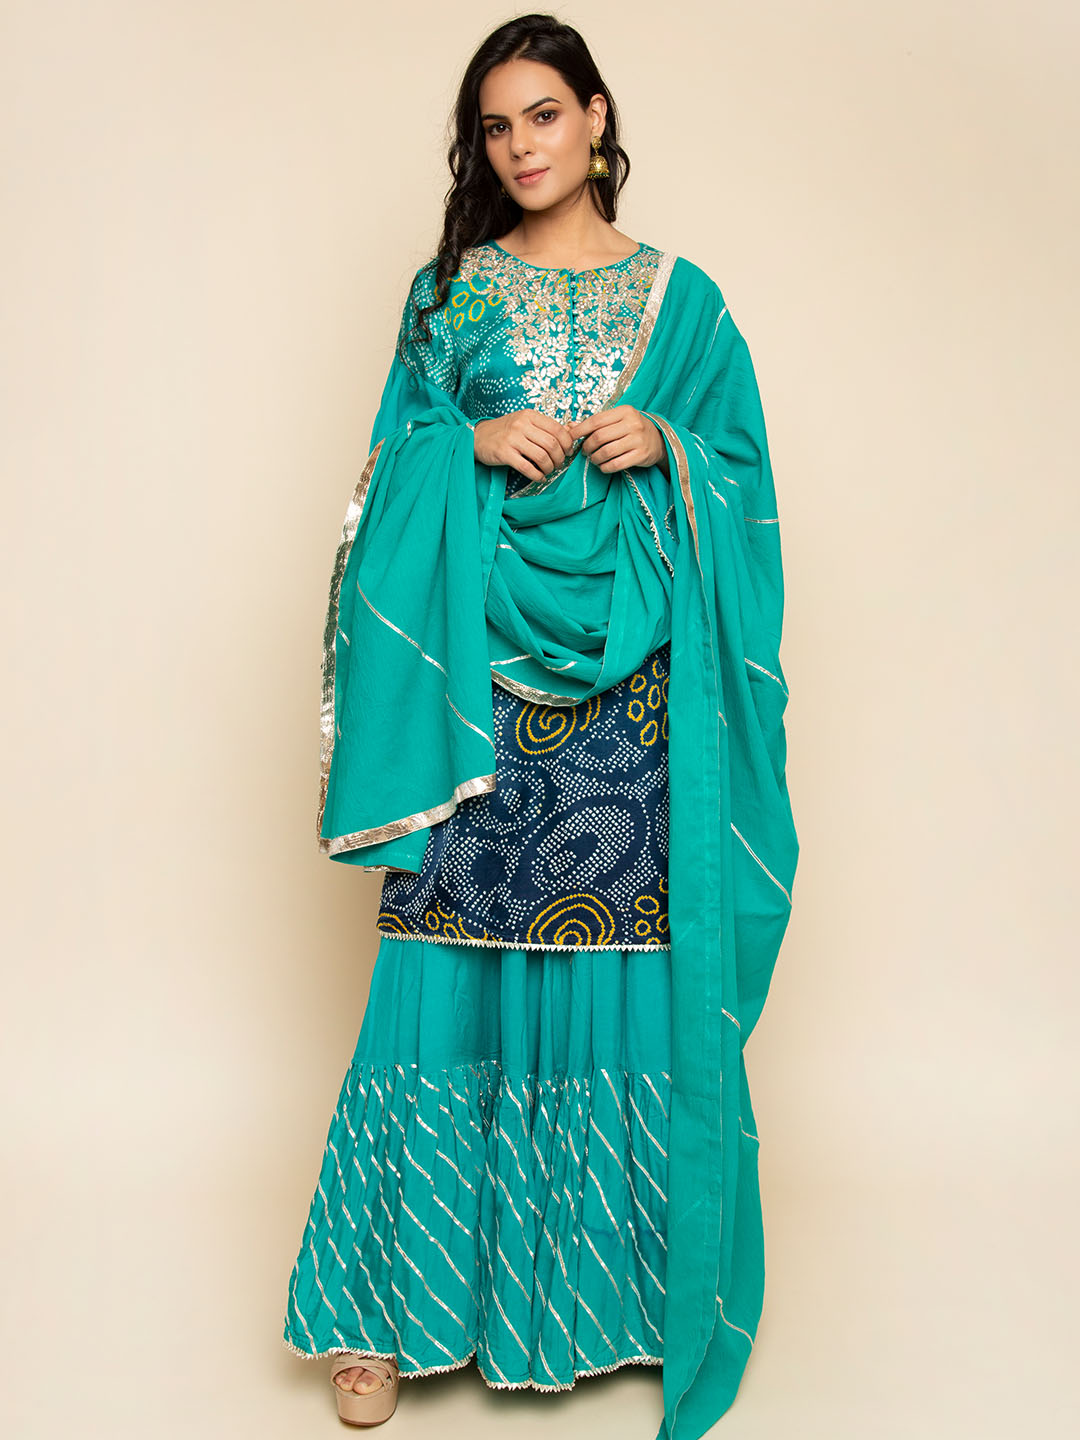 Bandhani Suit With Gota Embroidery